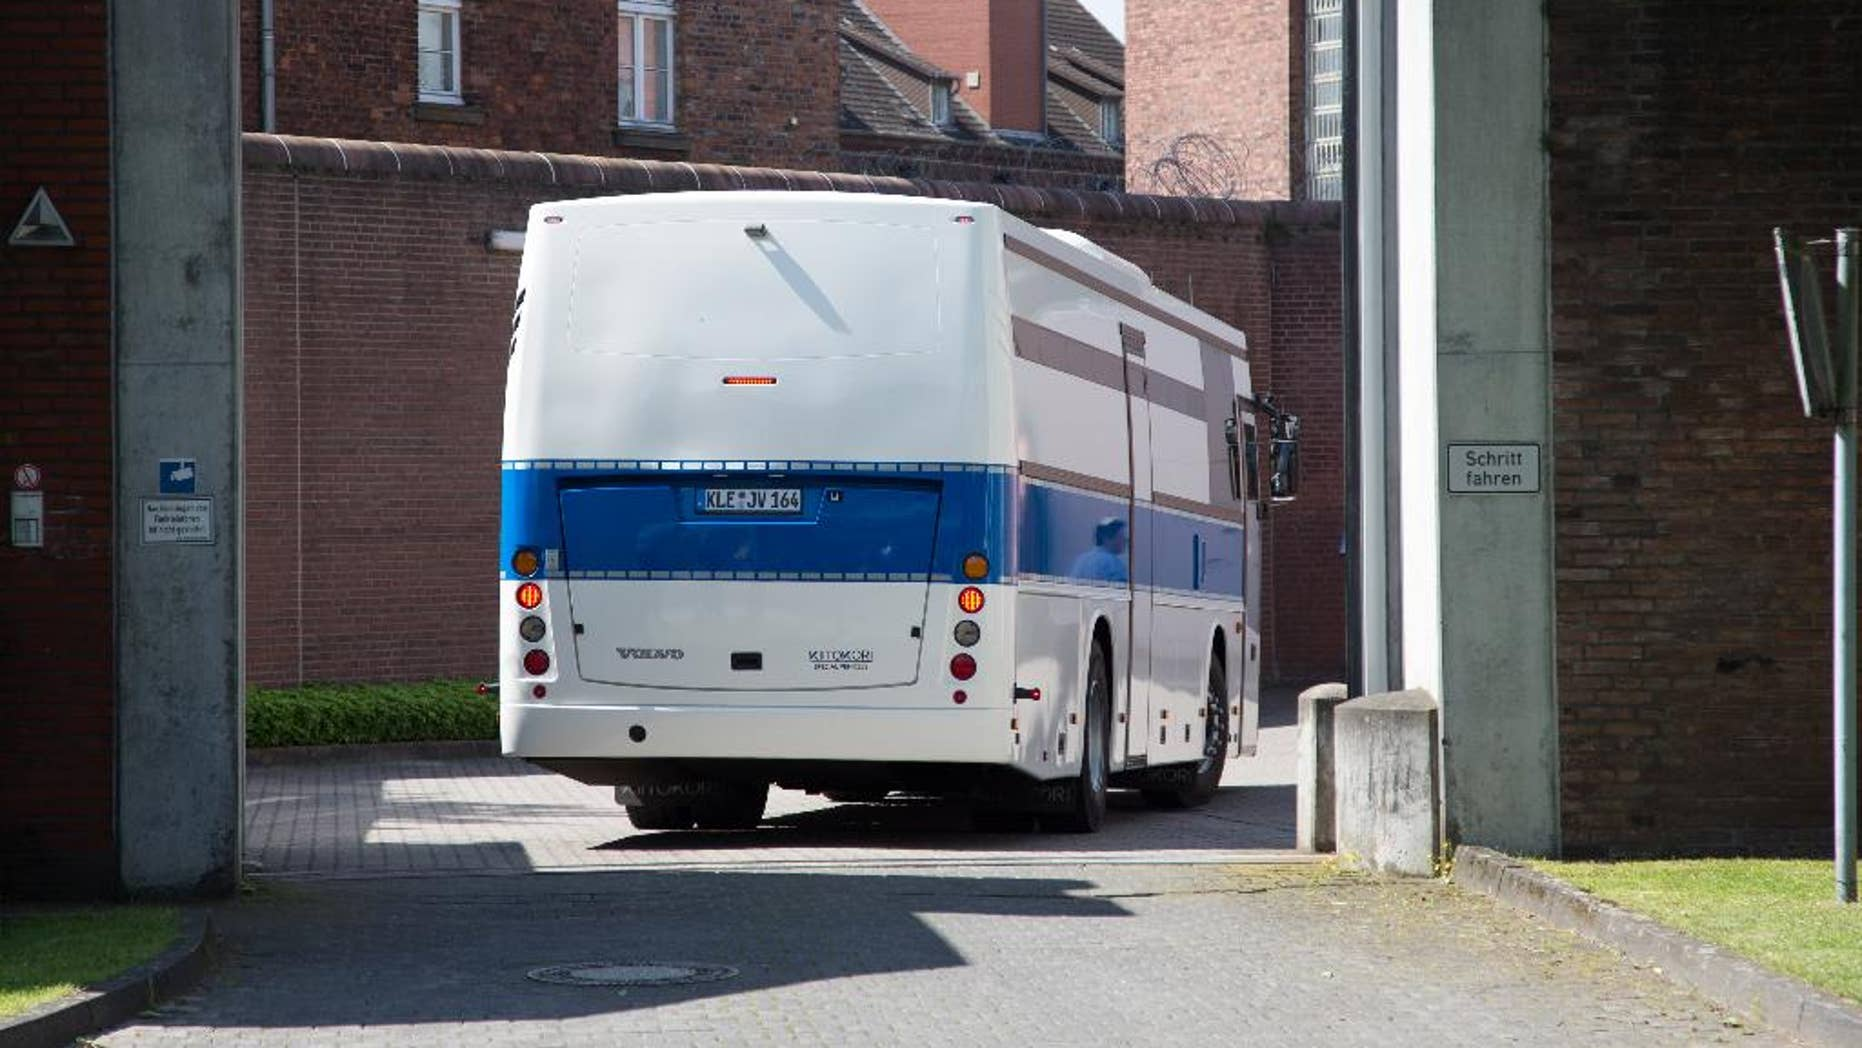 A bus for prisoners drives into the prison in Muenster, western Germany, Thursday, July 7, 2016. More than 500 inmates are being evacuated from the prison after experts said parts of the building were so dilapidated they could collapse any time. (Friso Gentsch/dpa via AP)